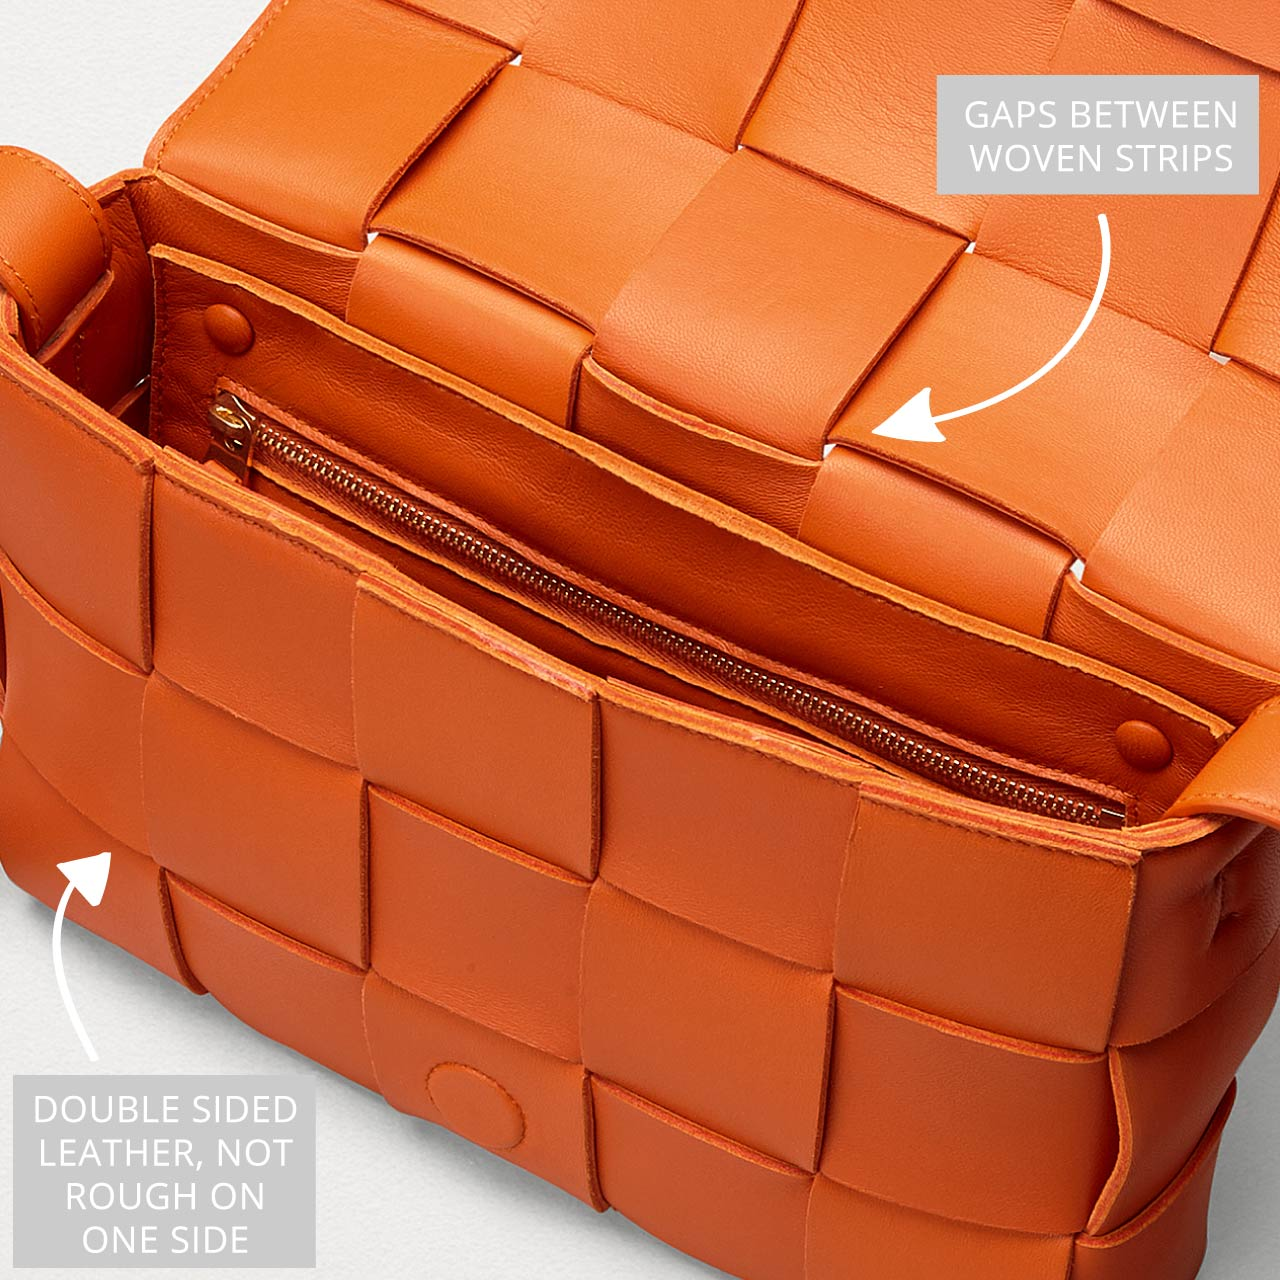 Bottega Veneta Intrecciato Weave | The Cutting Class. The Cassette bag with Intreccio maxi weave in Burned Orange. Made with double-faced leather.